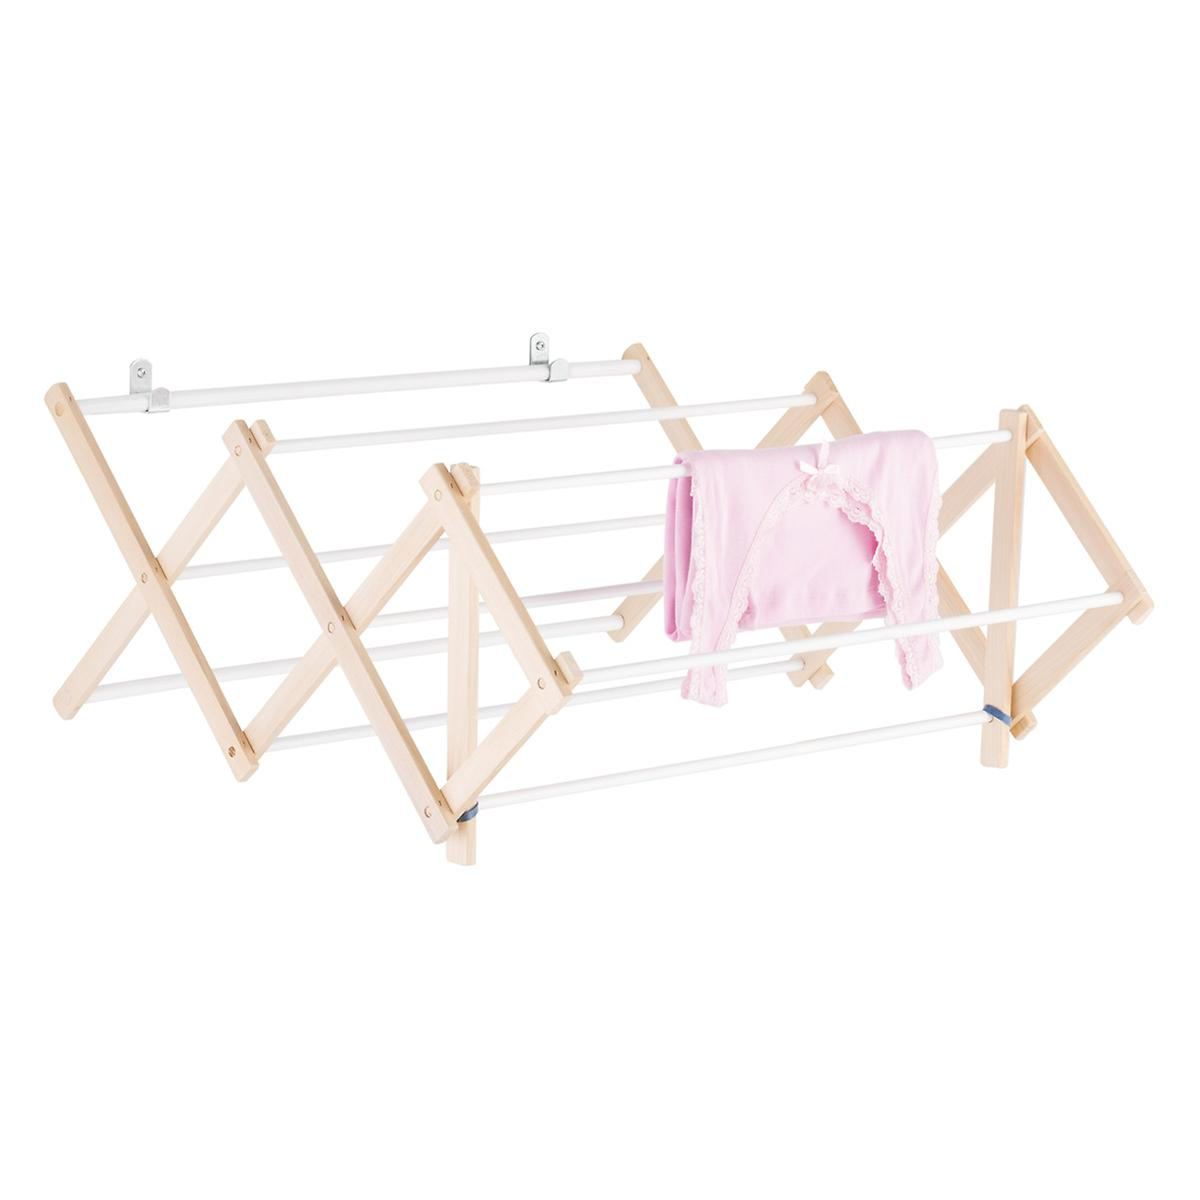 9 Dowel Wooden Wall Mounted Floor Clothes Drying Rack